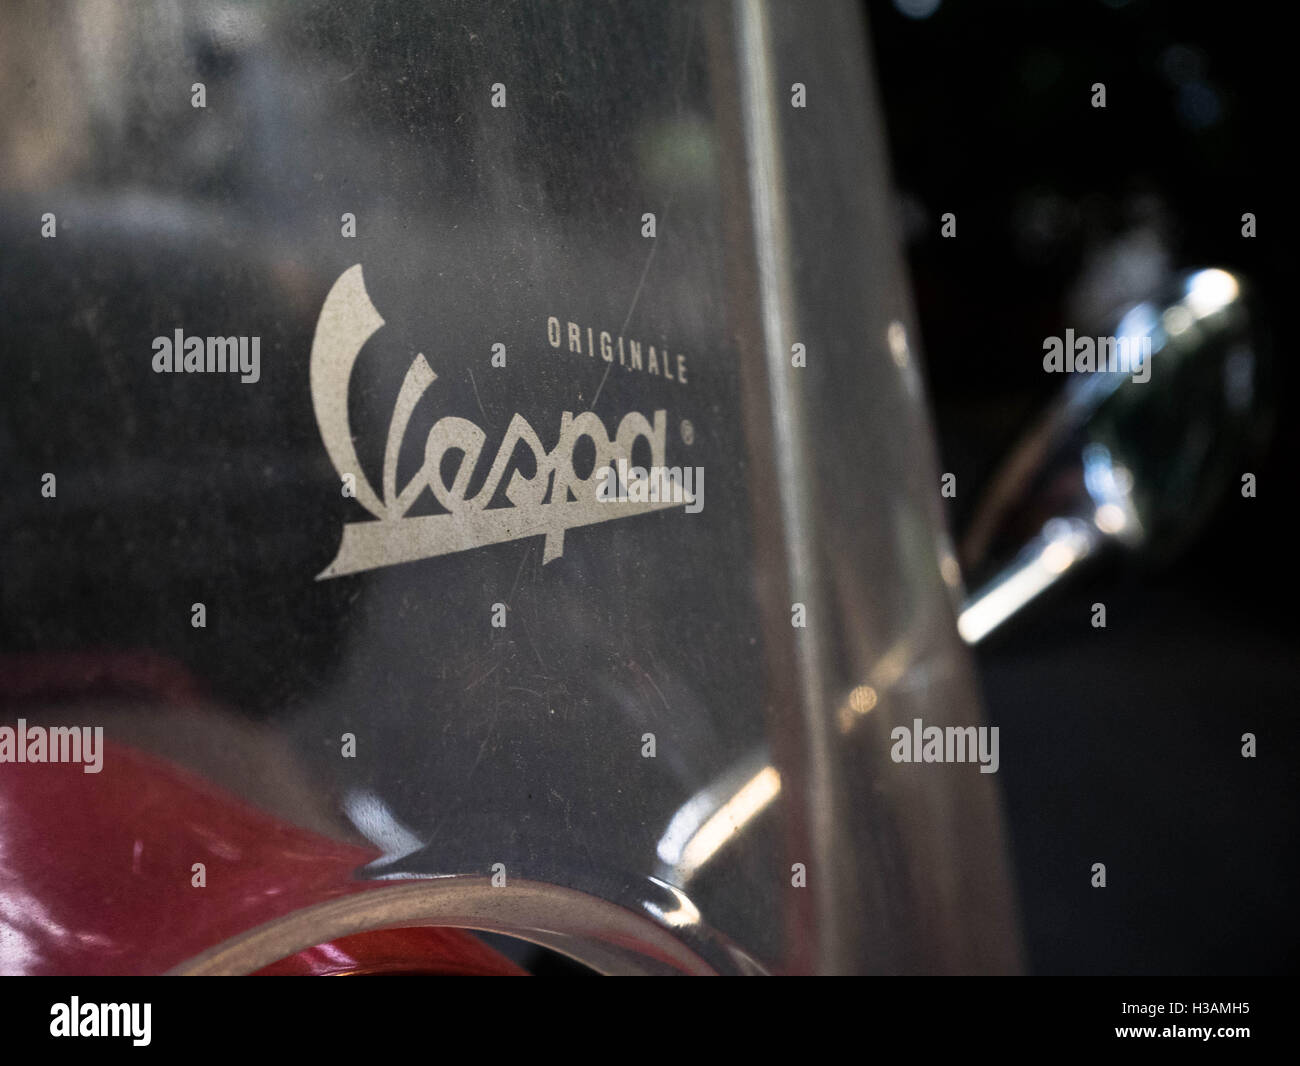 Vespa logo sticker glued on fron protective wind shield on a scooter. - Stock Image